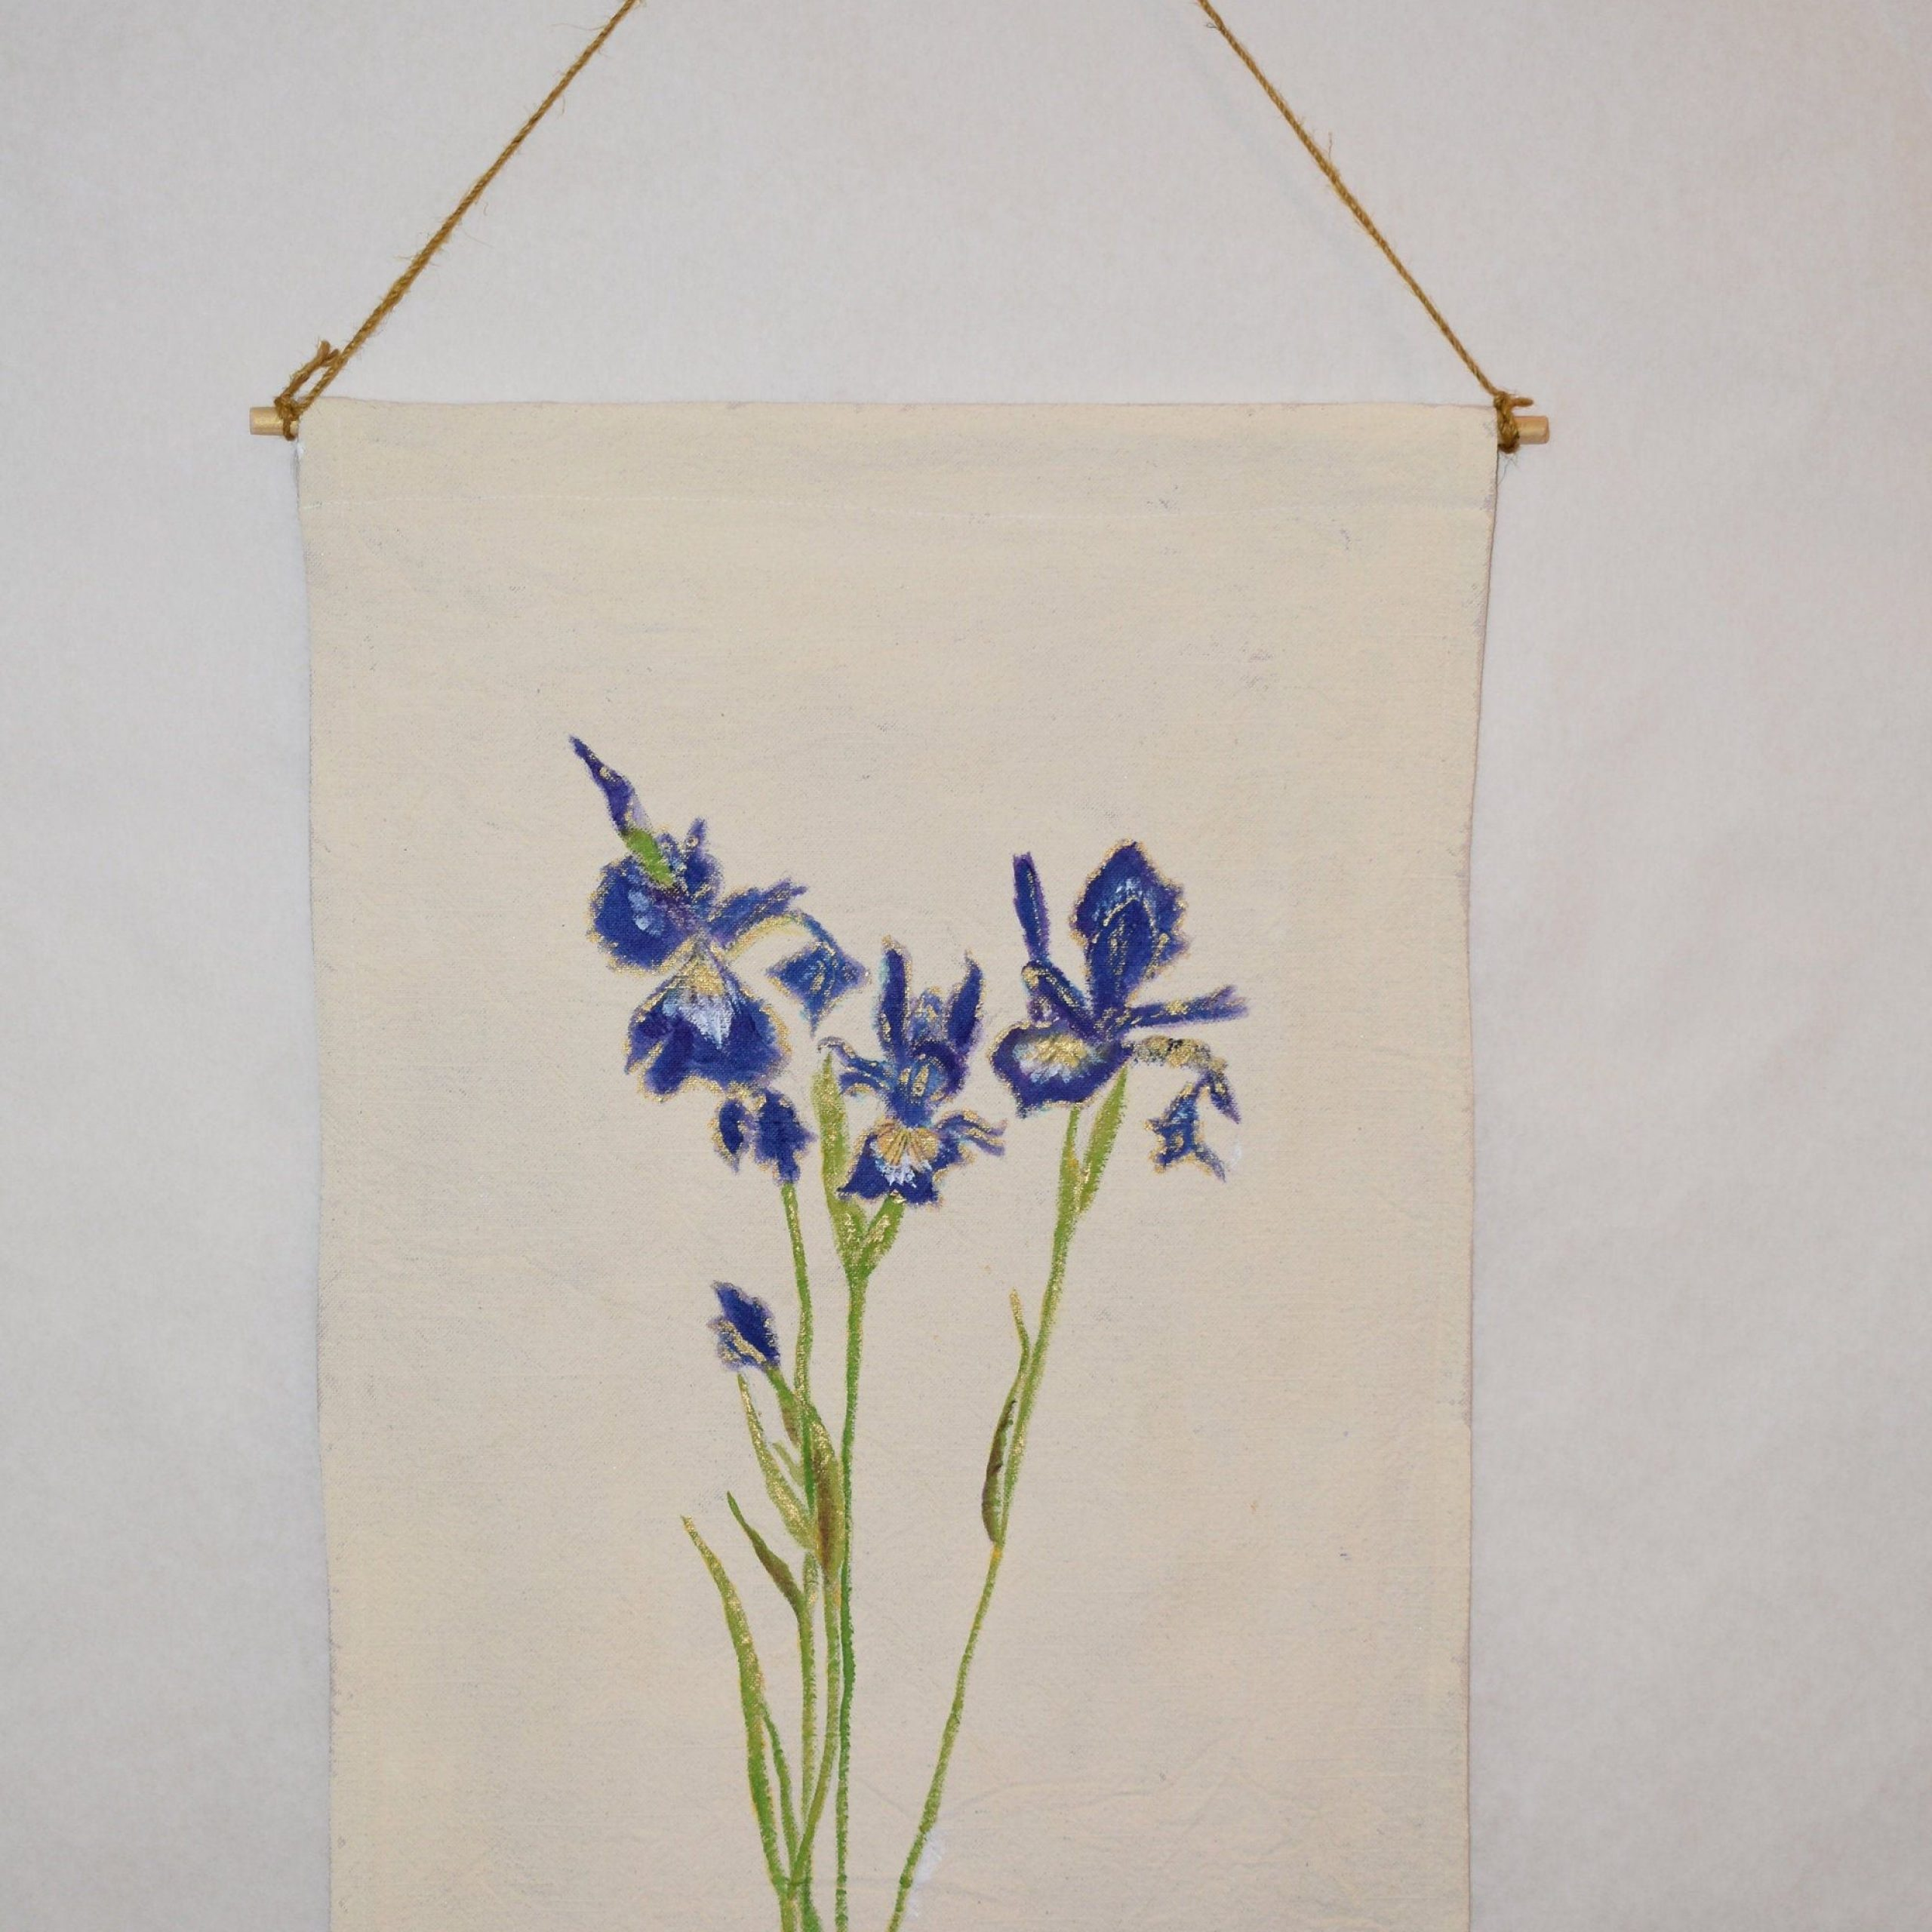 Hand Painted, Tapestry Intended For Most Current Blended Fabric Irises Tapestries (View 2 of 20)